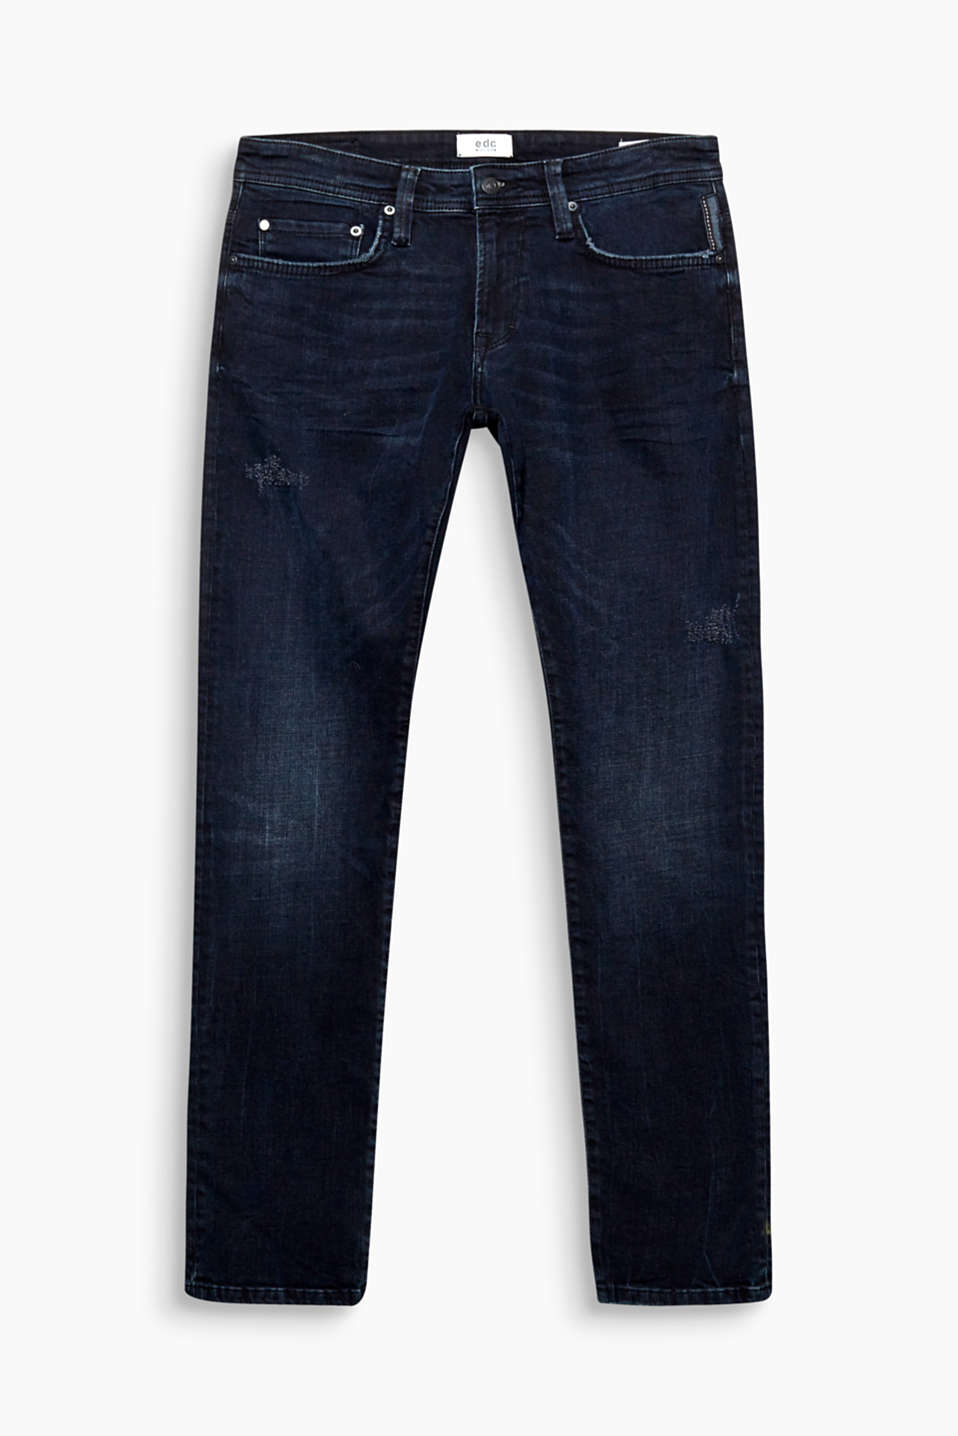 The perfect blue jeans thanks to their exciting dye: five-pocket jeans made of cotton with stretch